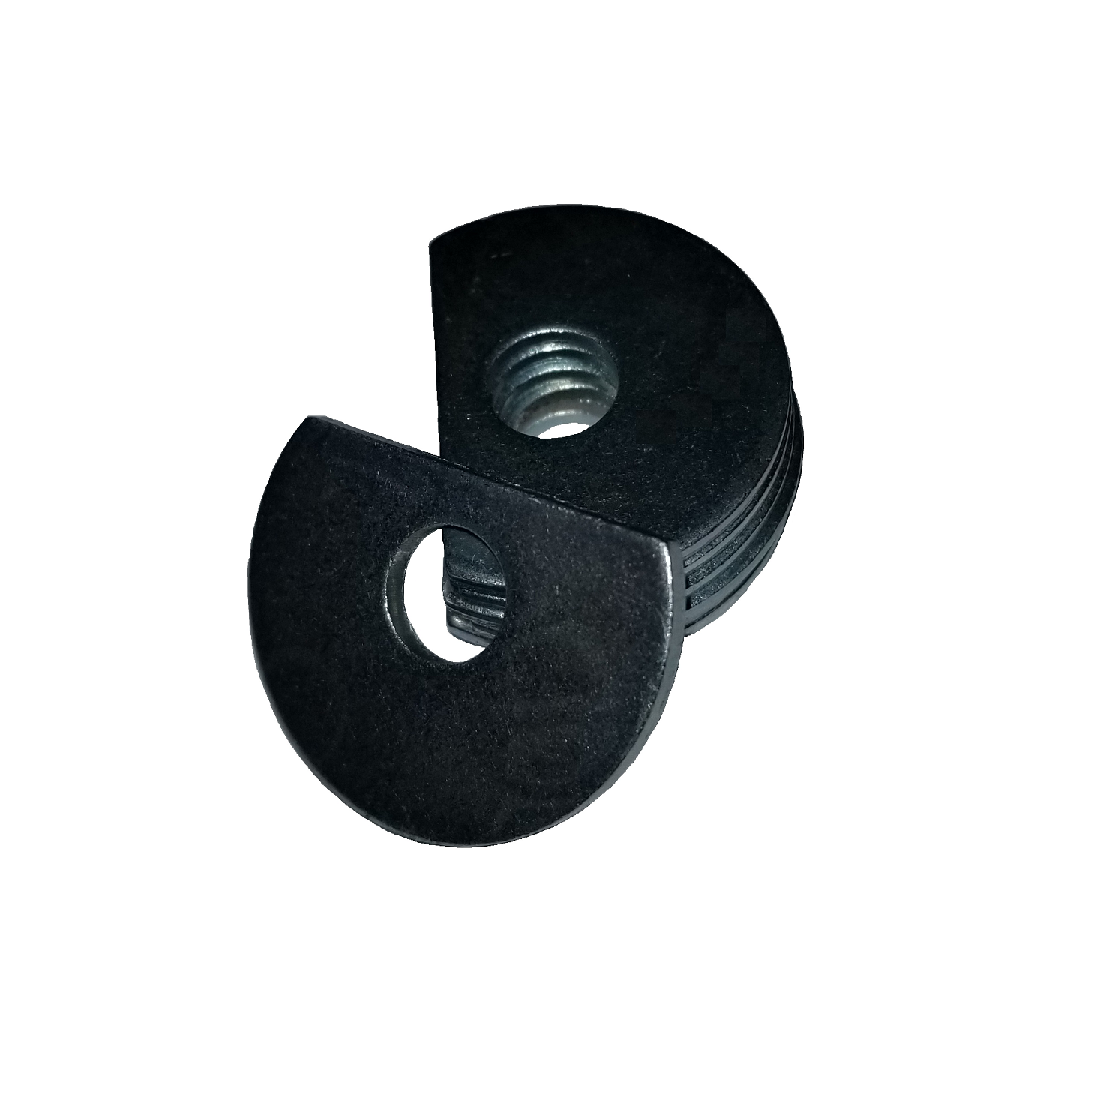 Clipped OD Washer - 0.693 ID, 1.281 OD, 0.157 Thick, Spring Steel - Hard